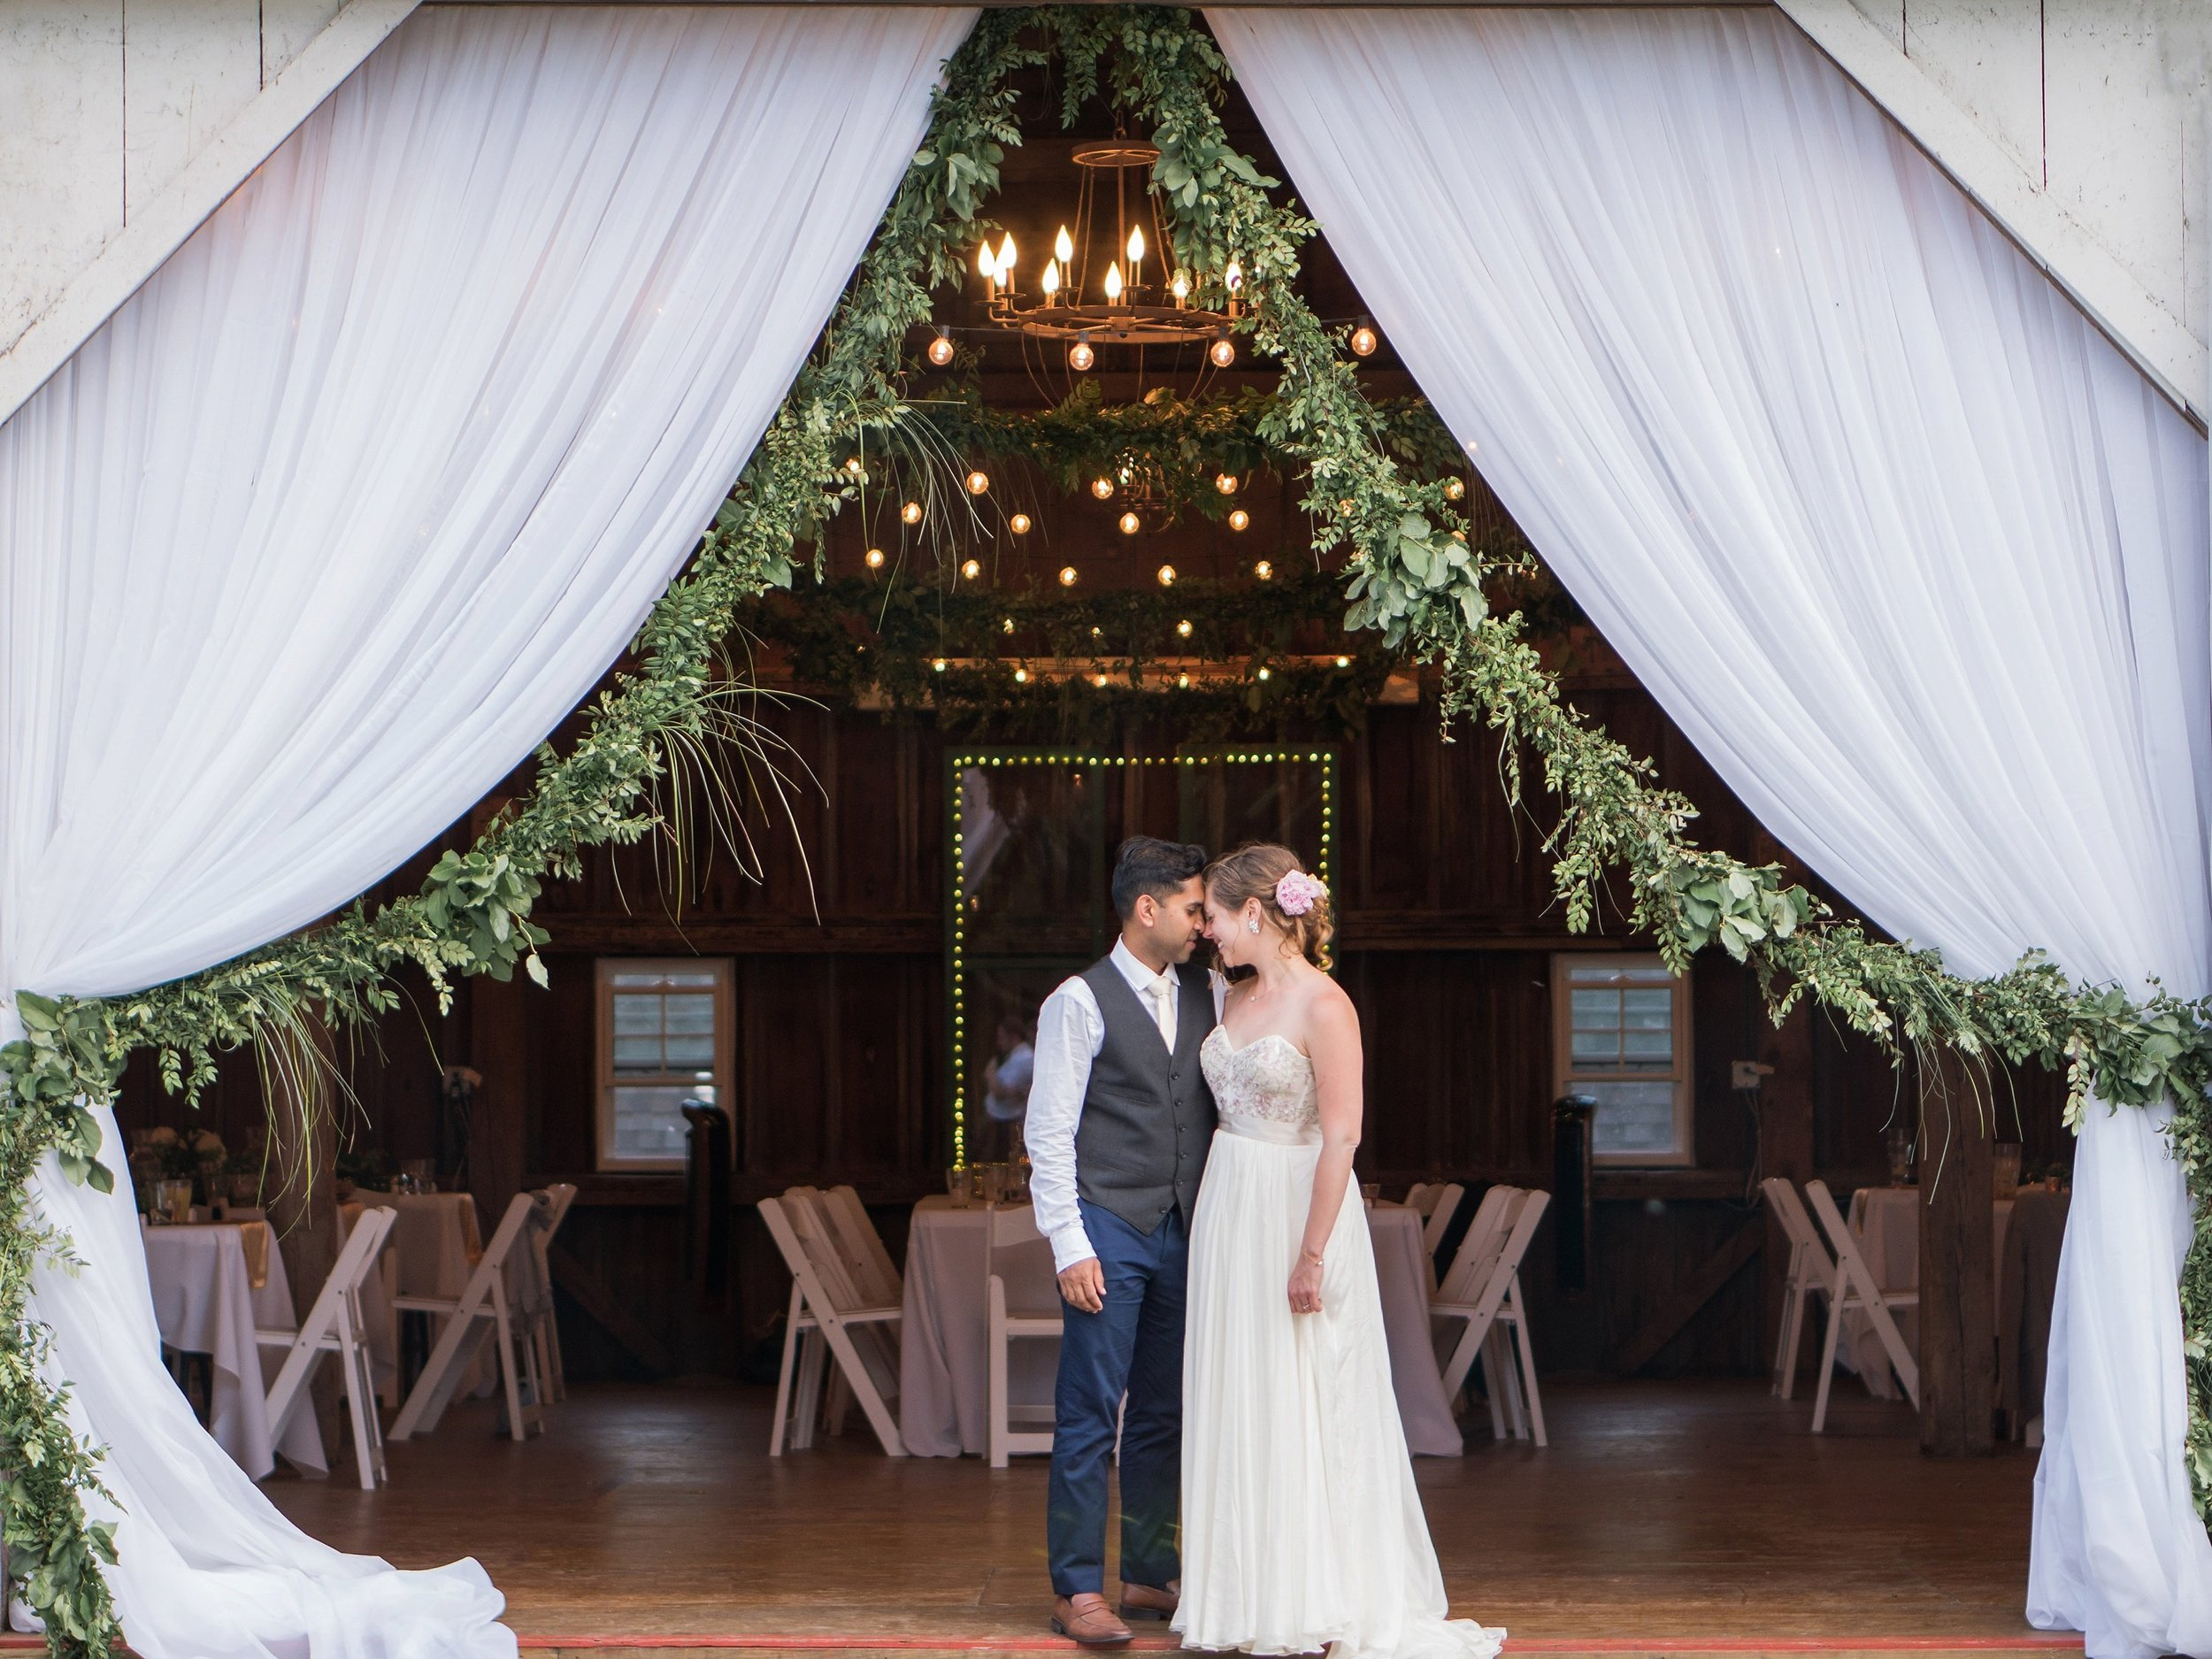 Newlywed couple in a barn entrance draped with white curtains pulled back with hanging greenery